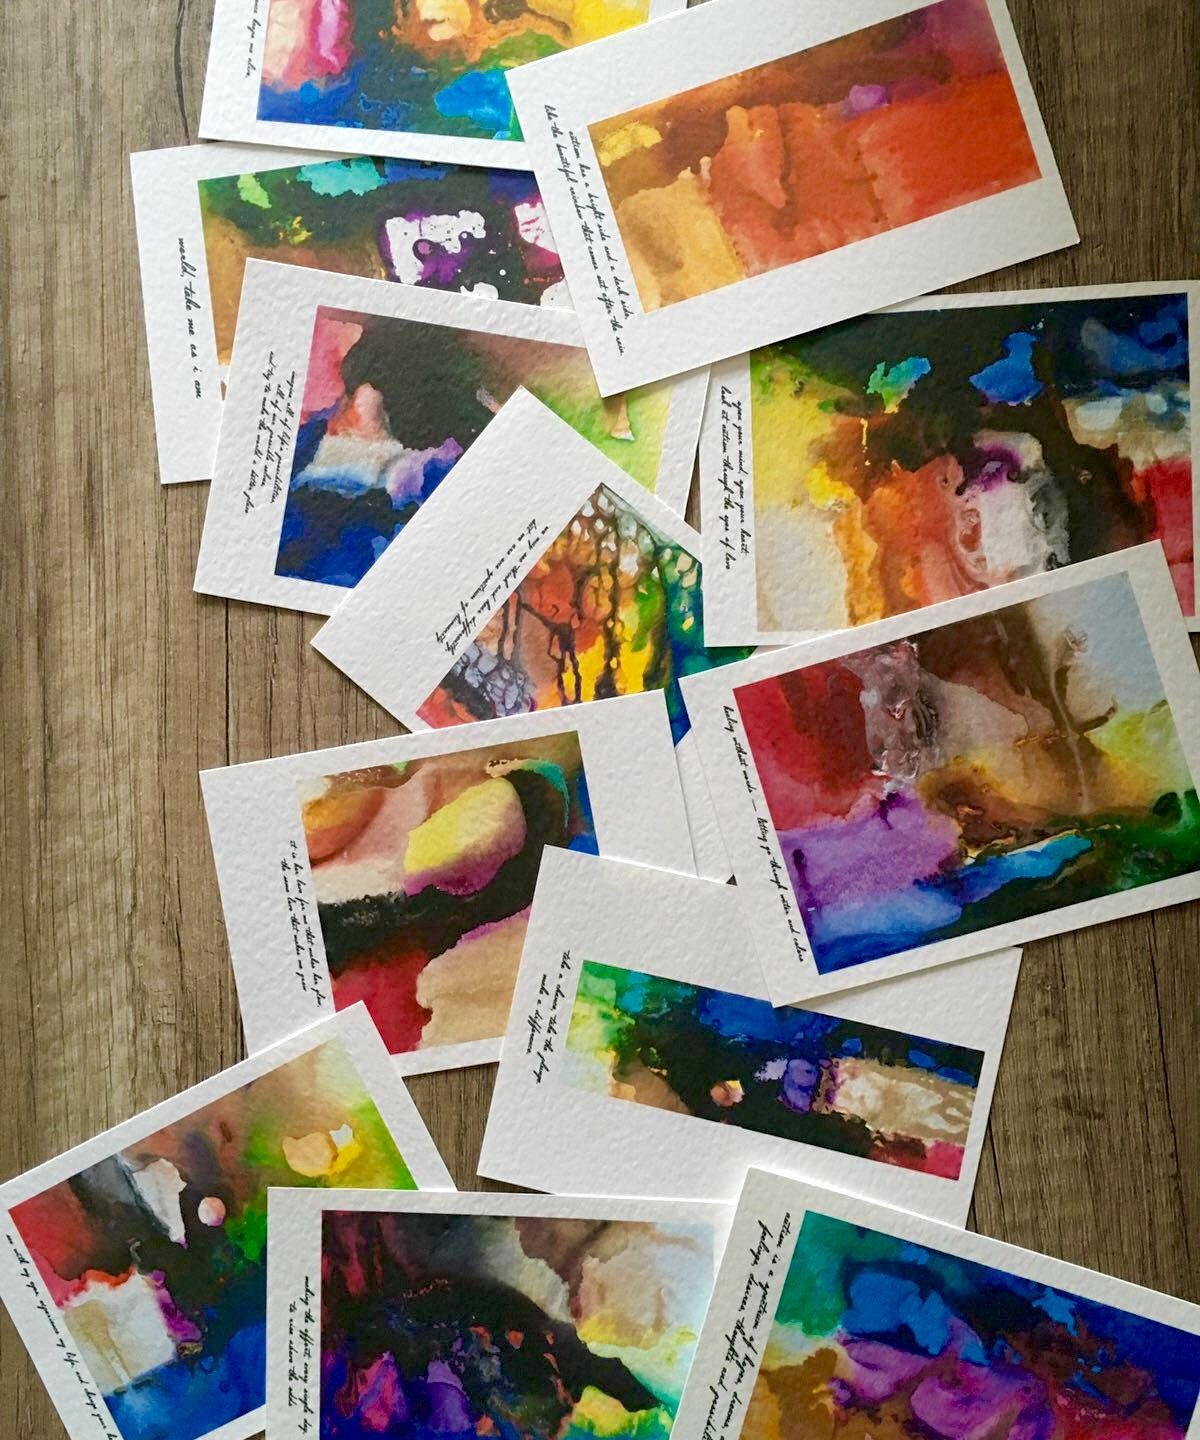 stationery cards of Seb's paintings